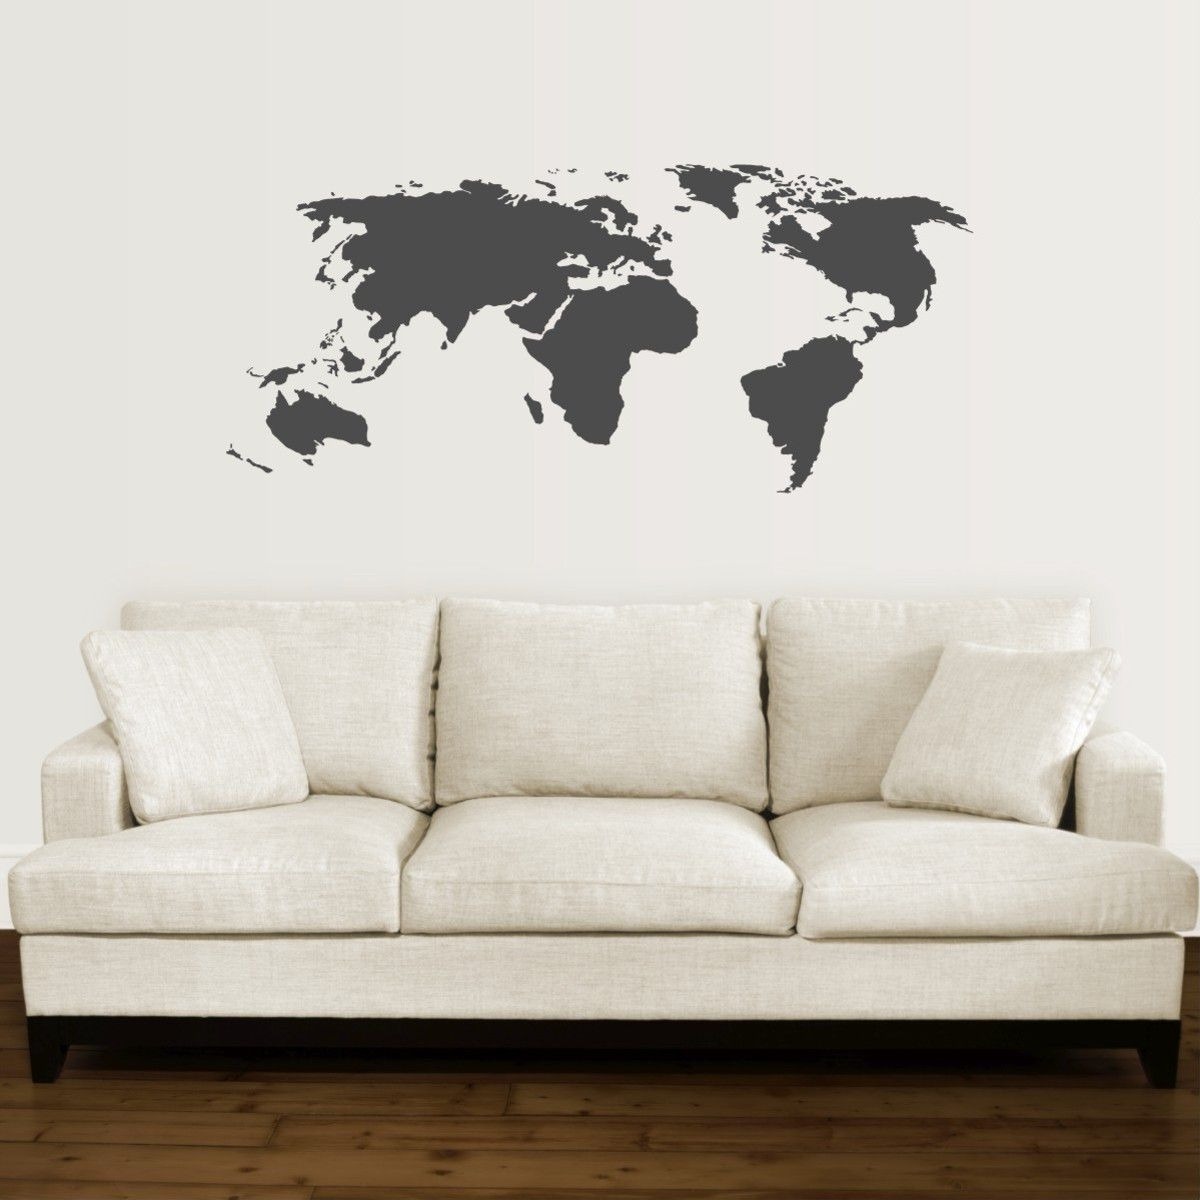 Trendy Vinyl Wall Art World Map With Bedight Wall Art Bedight World Map Vinyl Wall Art (View 7 of 15)